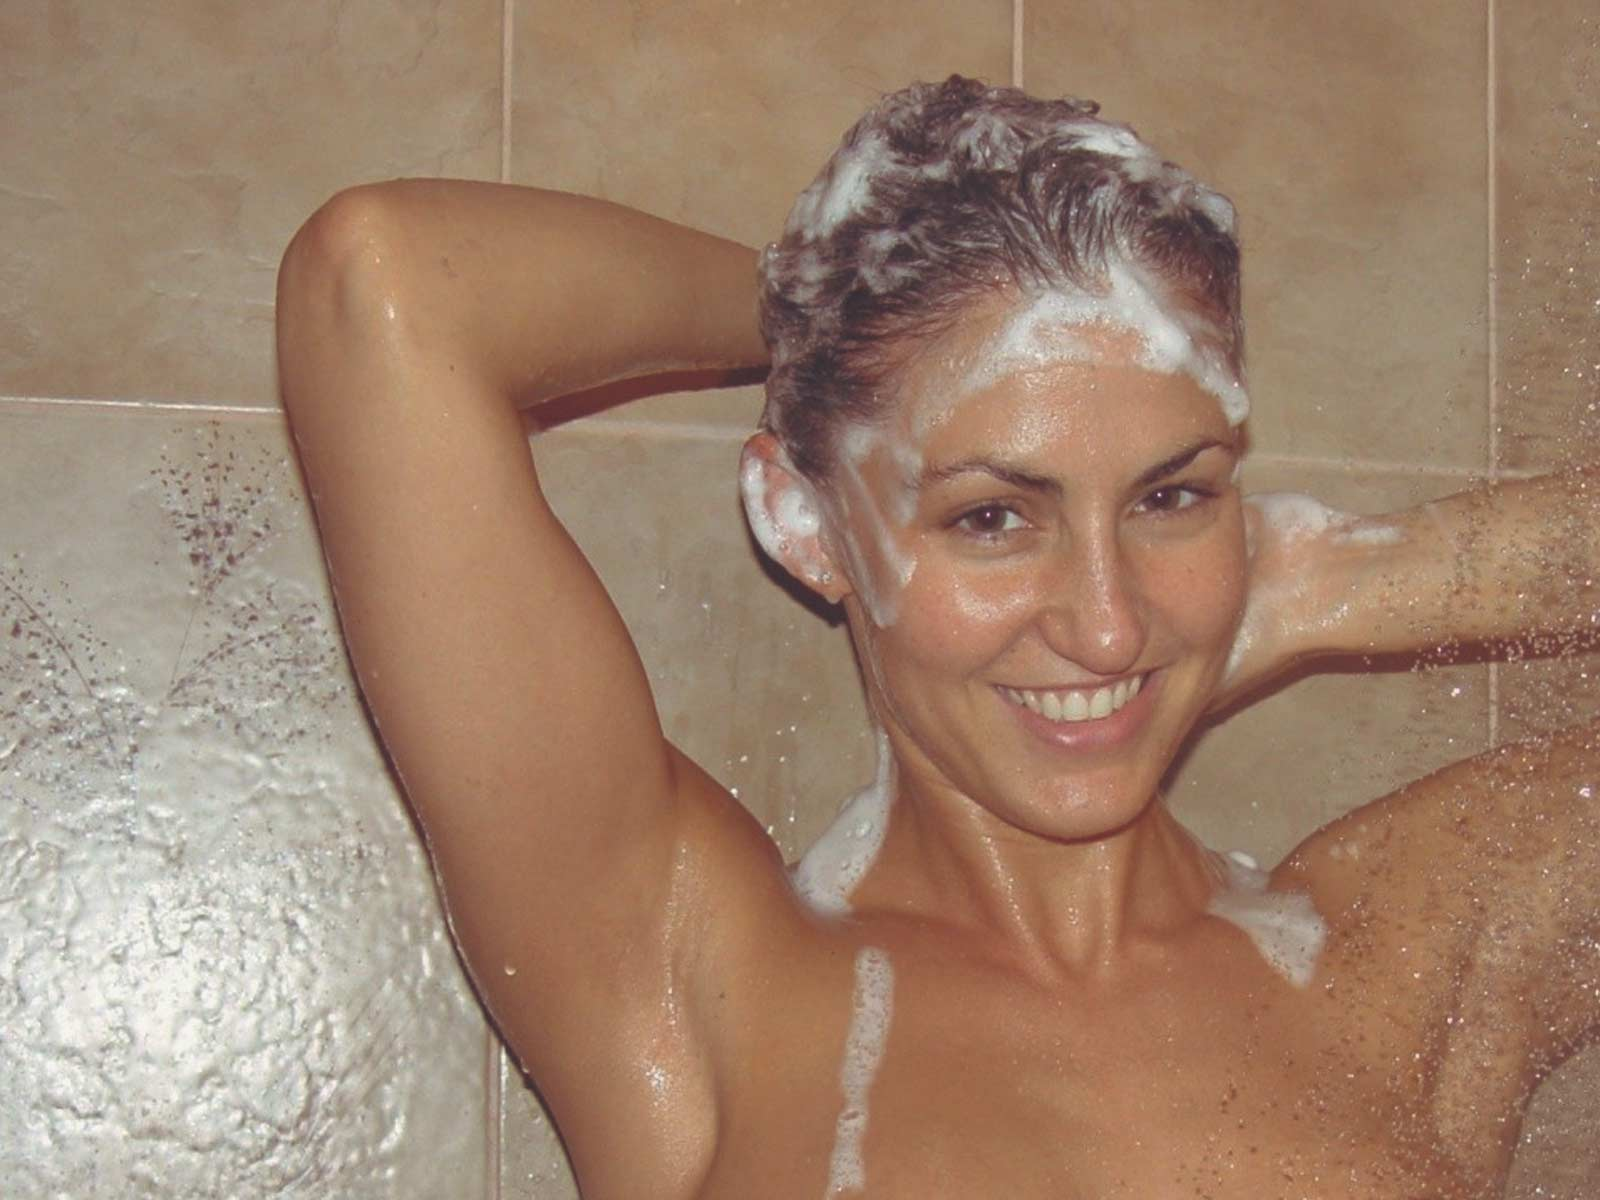 Why Showering Daily is Actually Bad for You